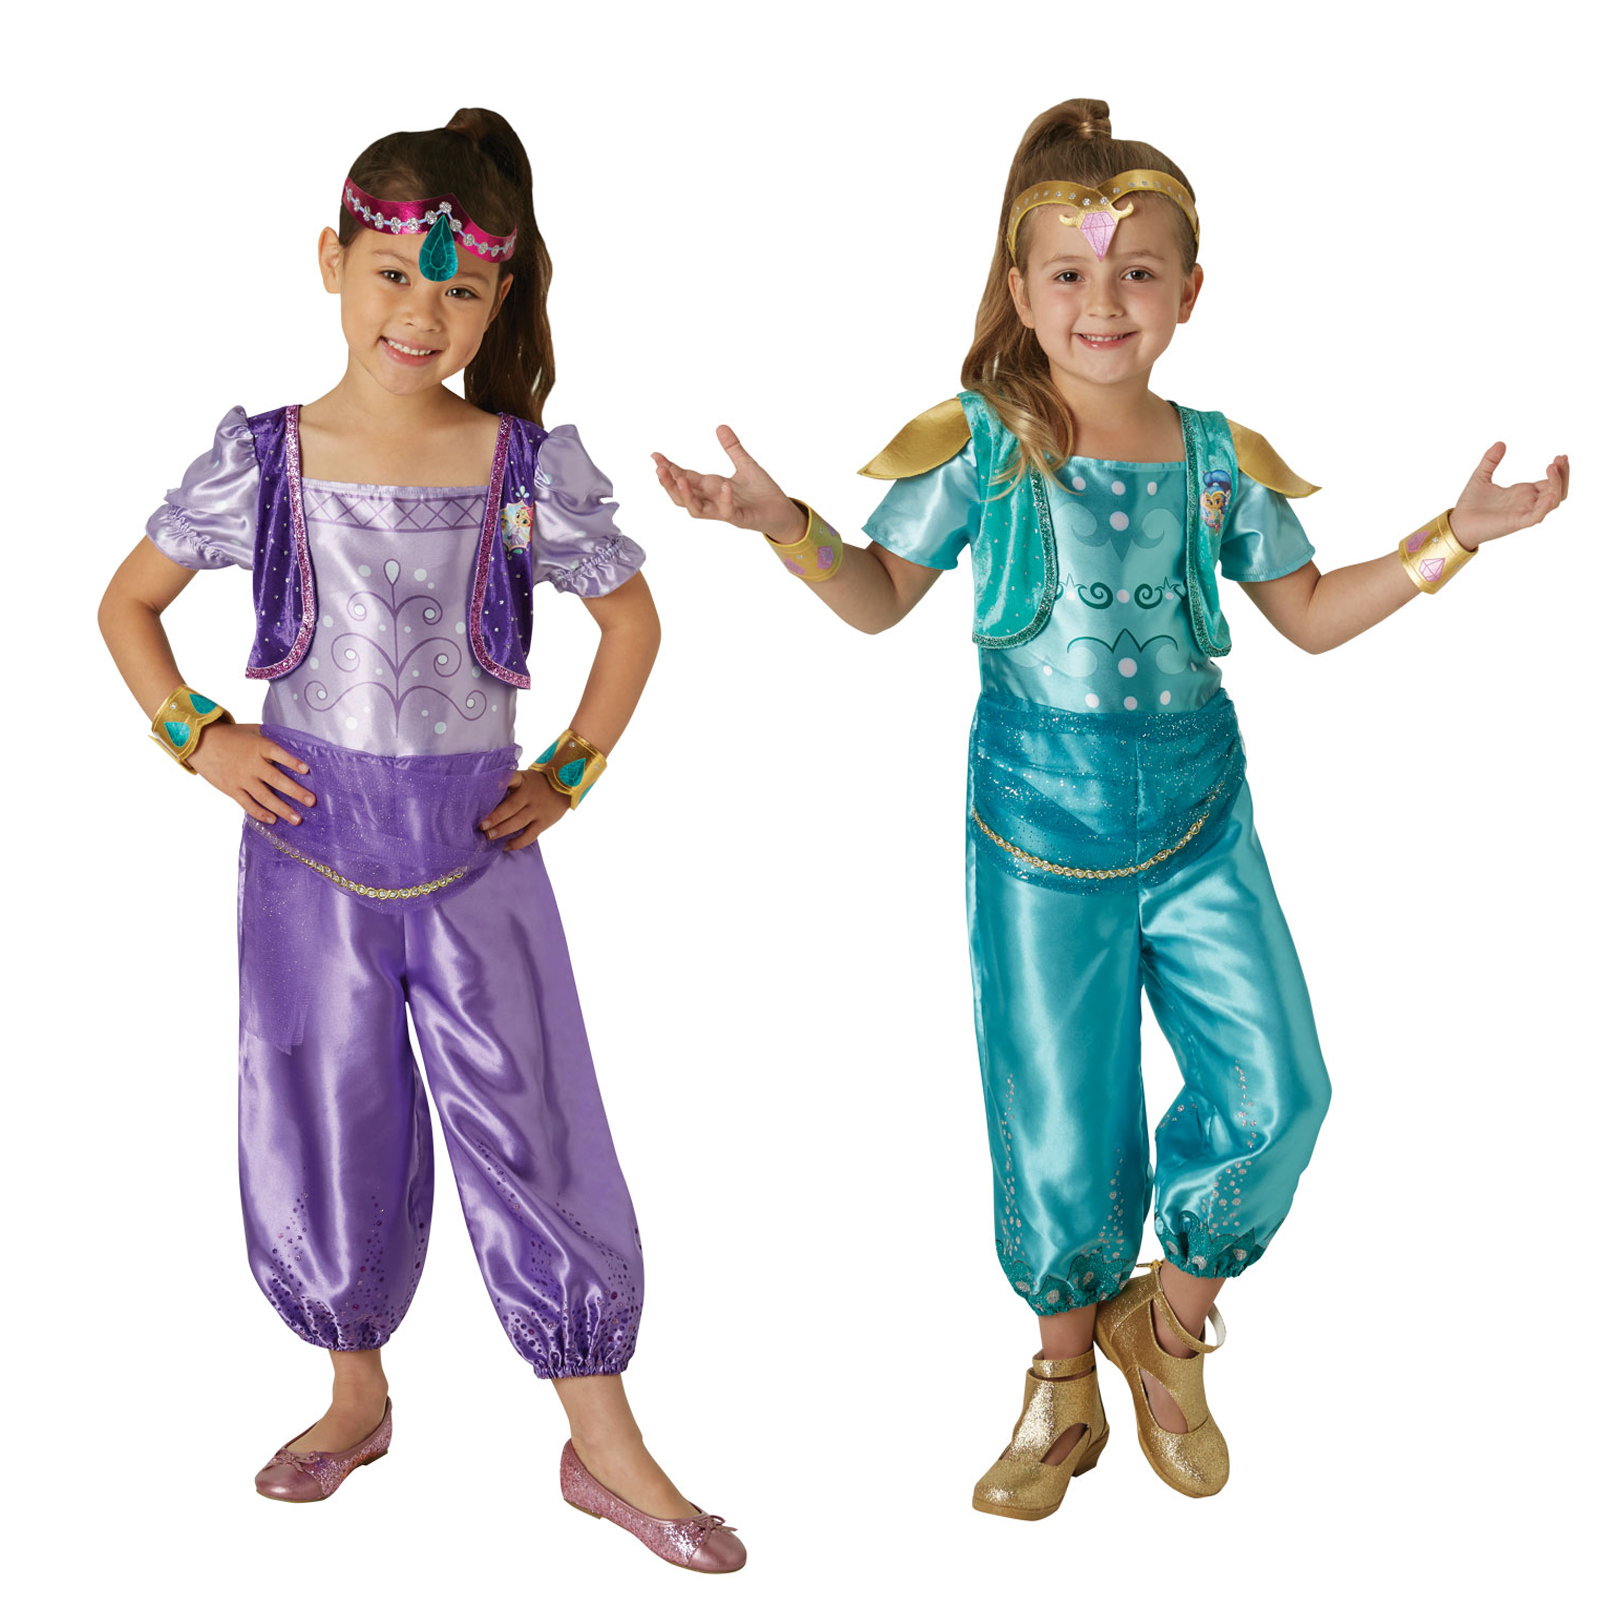 3e2828a40eb Details about Rubies Girls Official Licensed Nickelodeon Shimmer & Shine  Fancy Dress Costumes